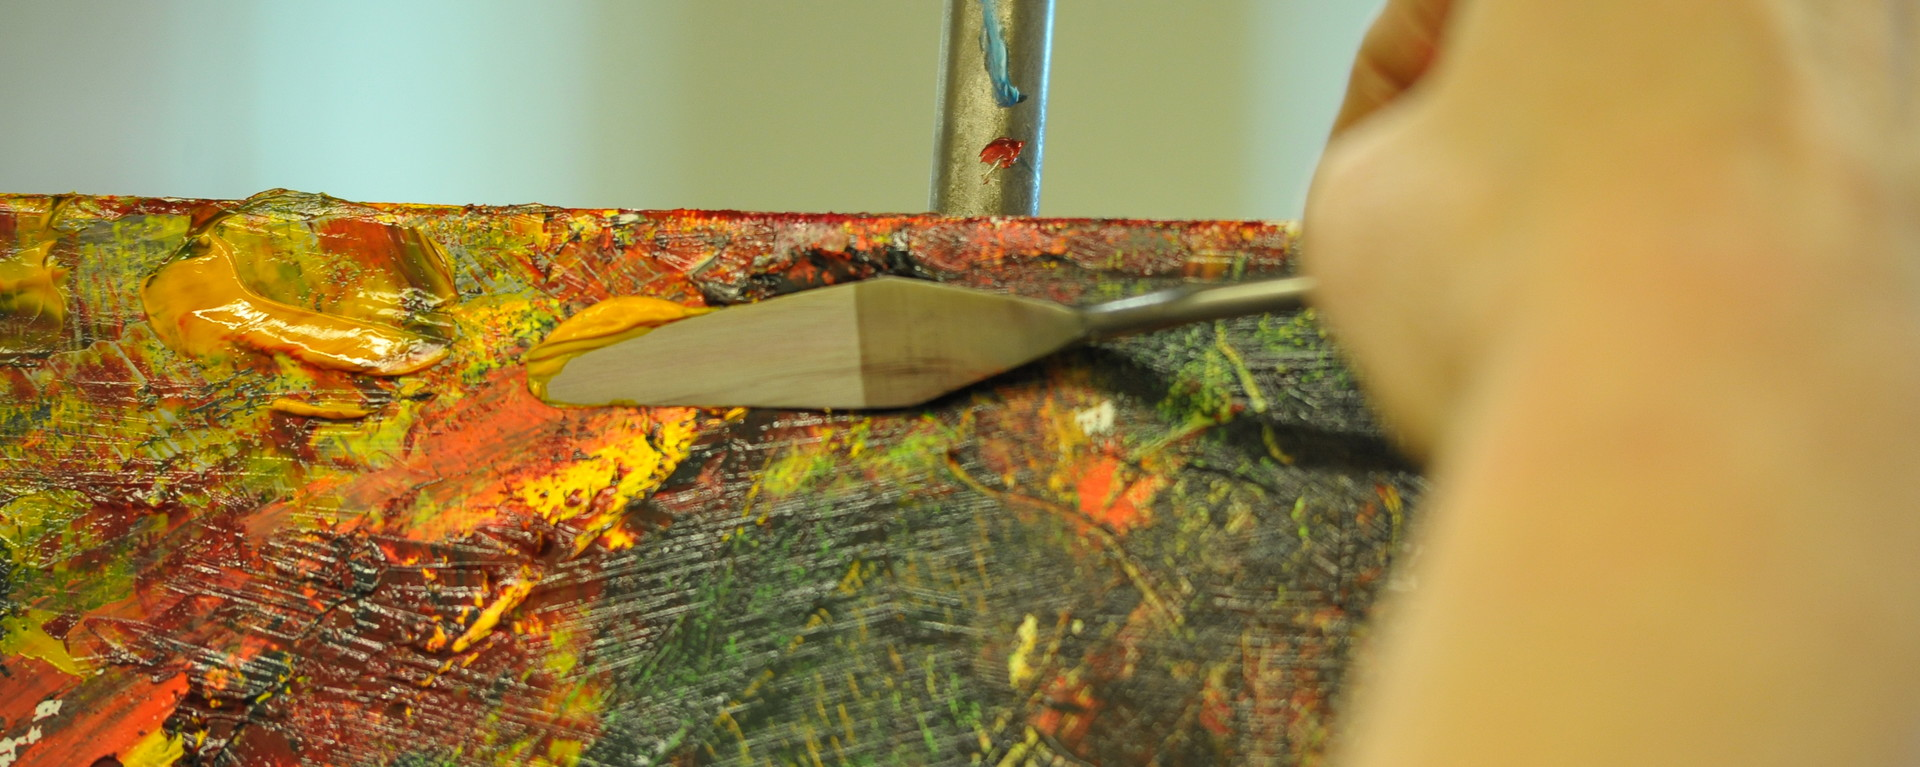 Close up of a student's hand painting on an easel